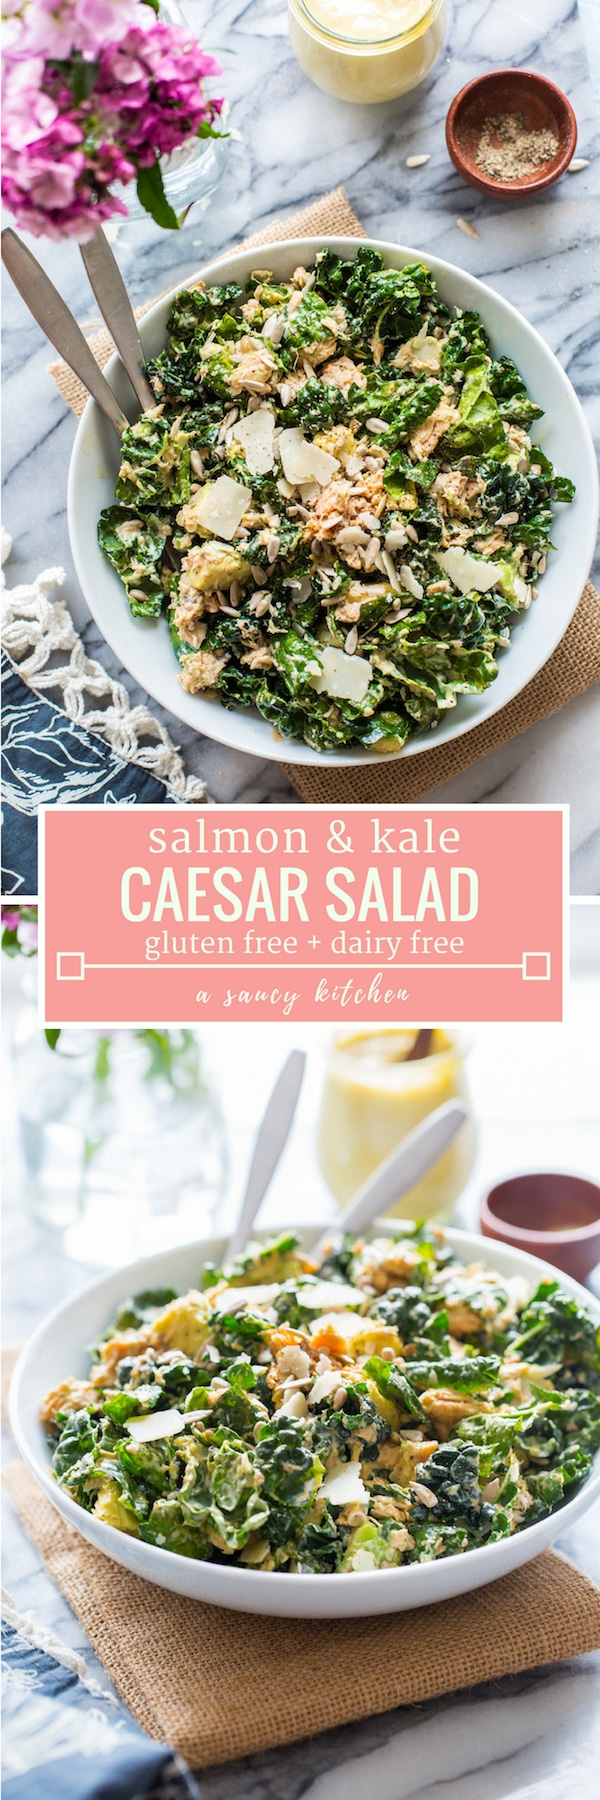 Salmon and Kale Caesar Salad  with diced avocado, sunflower seeds and shaved parmesan. Canned salmon makes this salad protein packed & calcium rich while also being easy and affordable! #GlutenFree + #LowCarb #keto #salmon #kalesalad #healthyrecipes